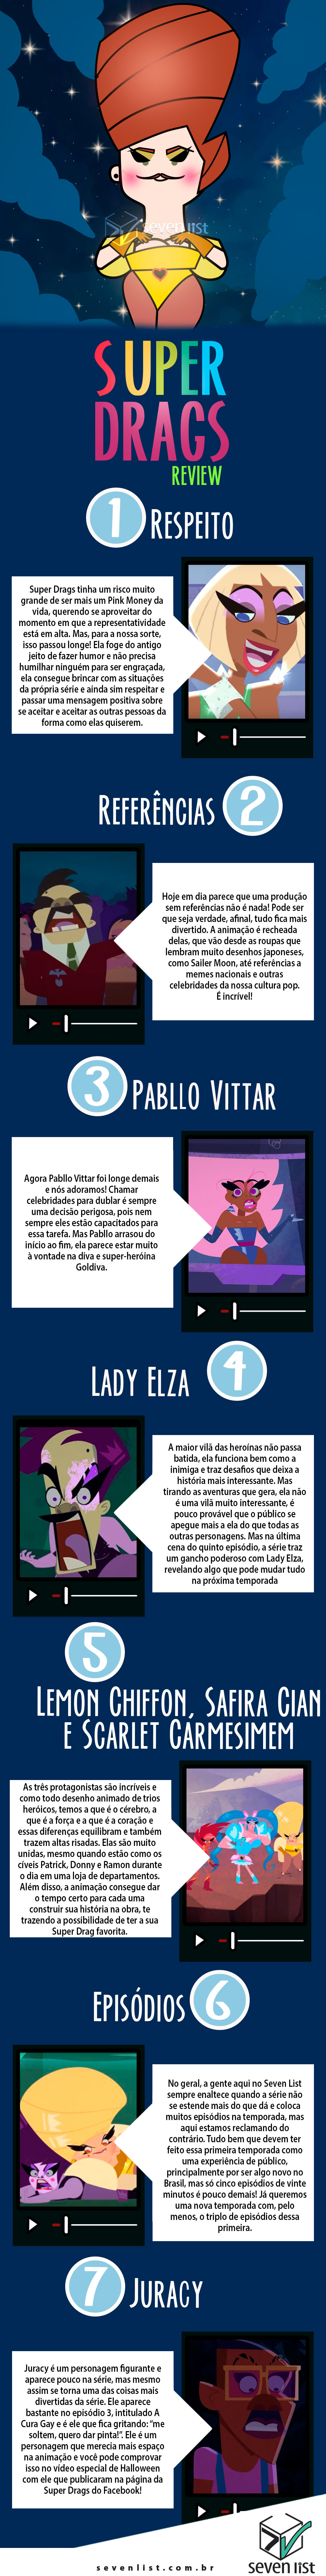 super drags original netflix